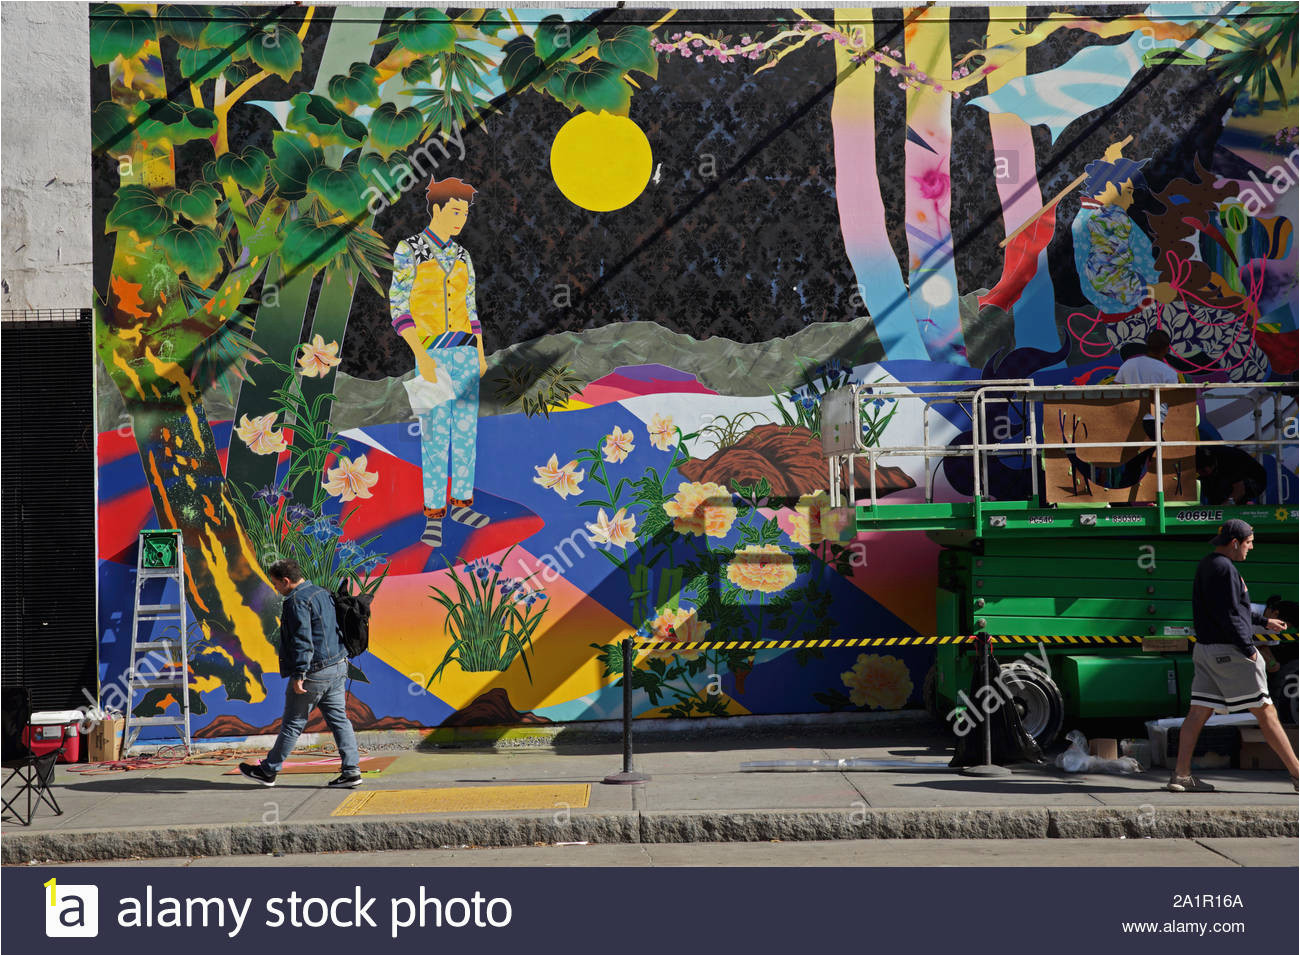 new york ny usa september 20 2019 view of the fine art painting by tomokazu matsuyama on the bowery mural wall on houston street 2A1R16A